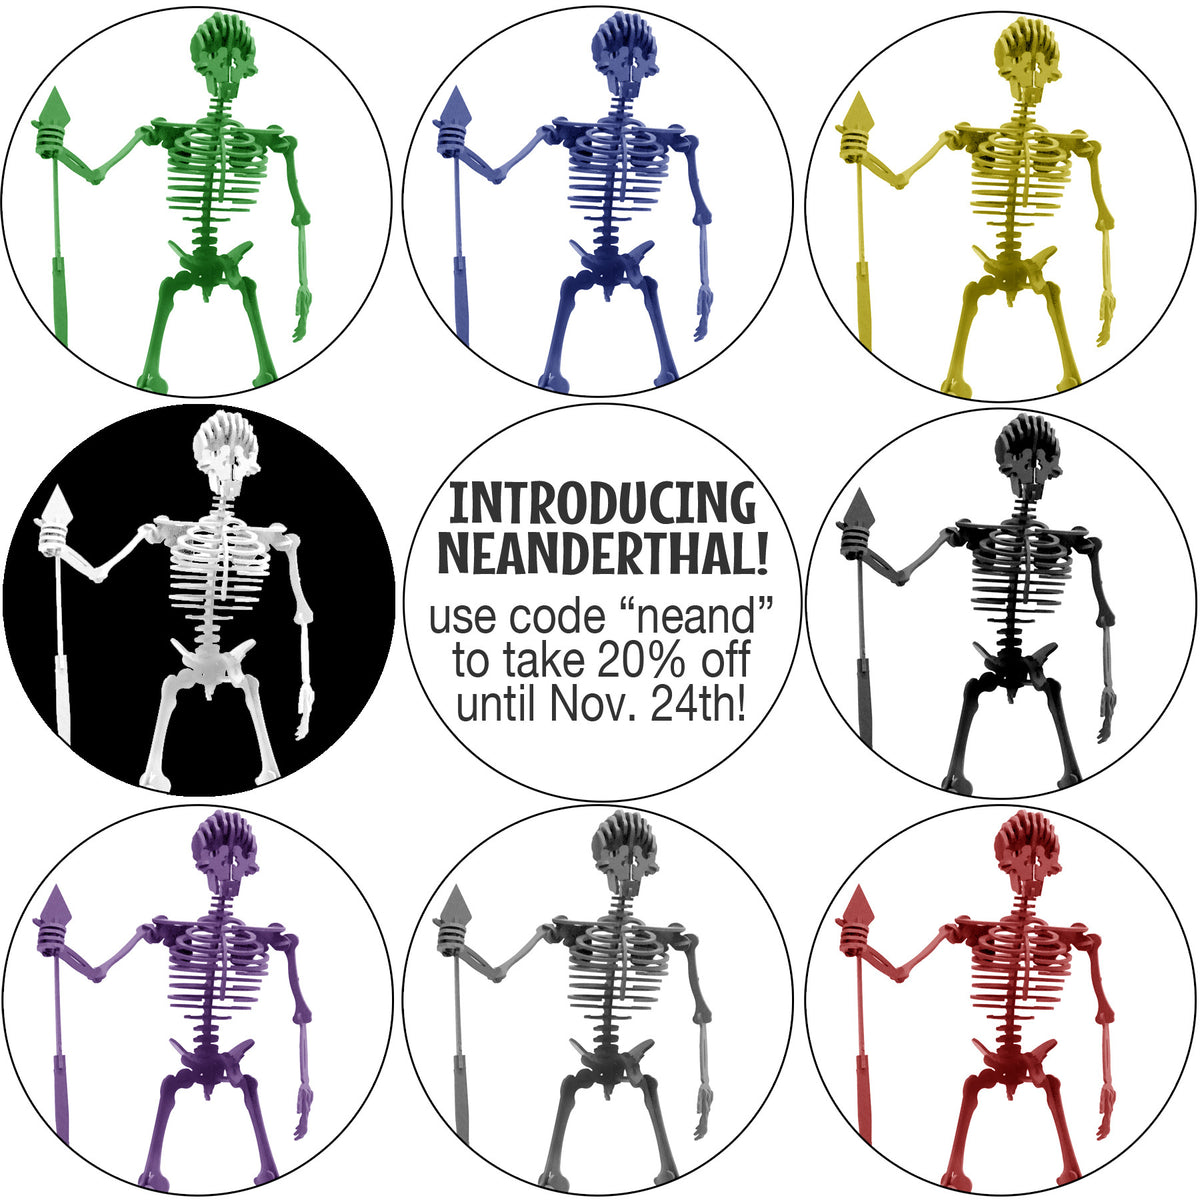 Introducing...NEANDERTHAL! Our newest Boneyard Pet!